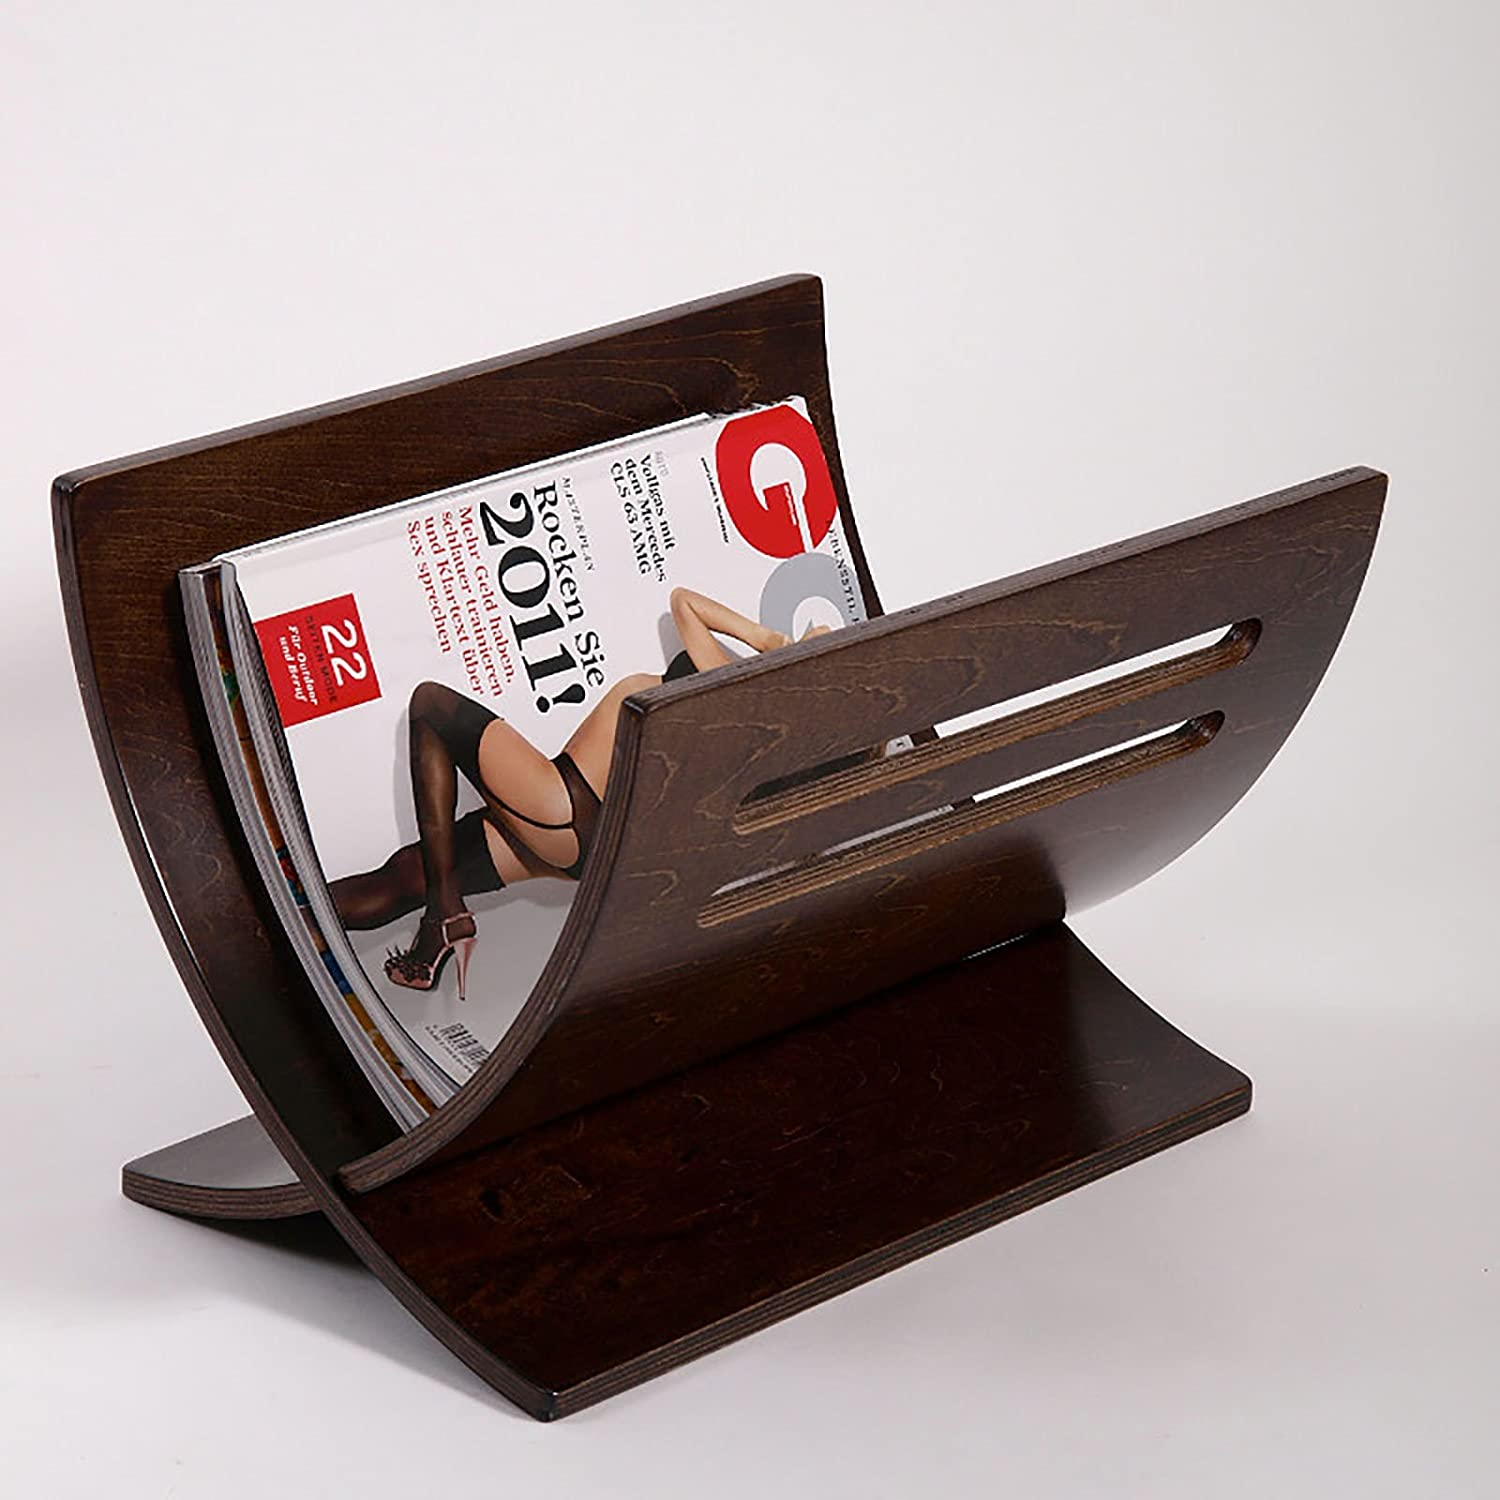 DESIGN NEWSPAPER & MAGAZINE RACK HOLDER NEWS WOOD plywood basket from XTF24 retro-brown XTRADEFACTORY GMBH